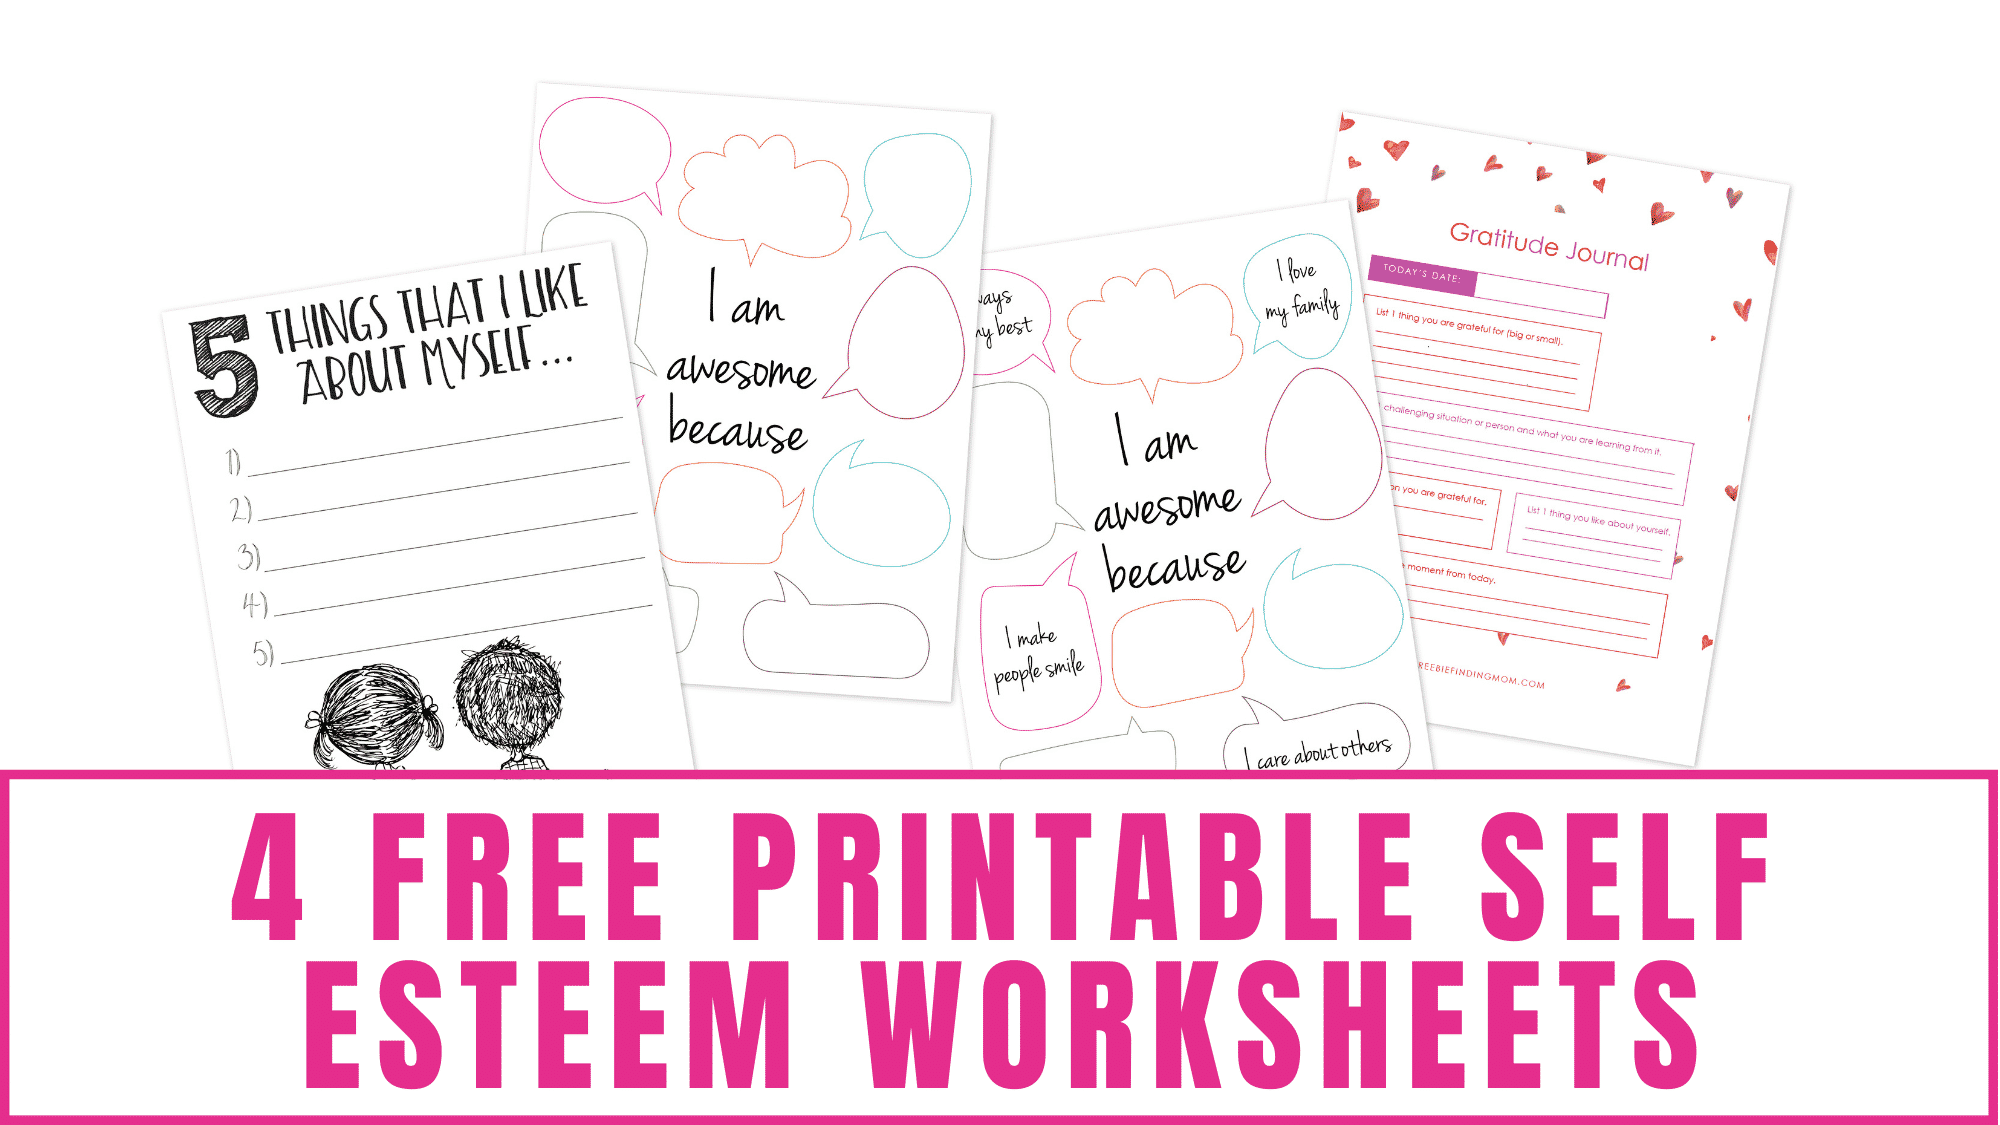 Does someone you know (or yourself) need to work on self-esteem? Simple actions like completing one of these free printable self esteem worksheets can improve your mood, affect your gratitude, and build your self-confidence.